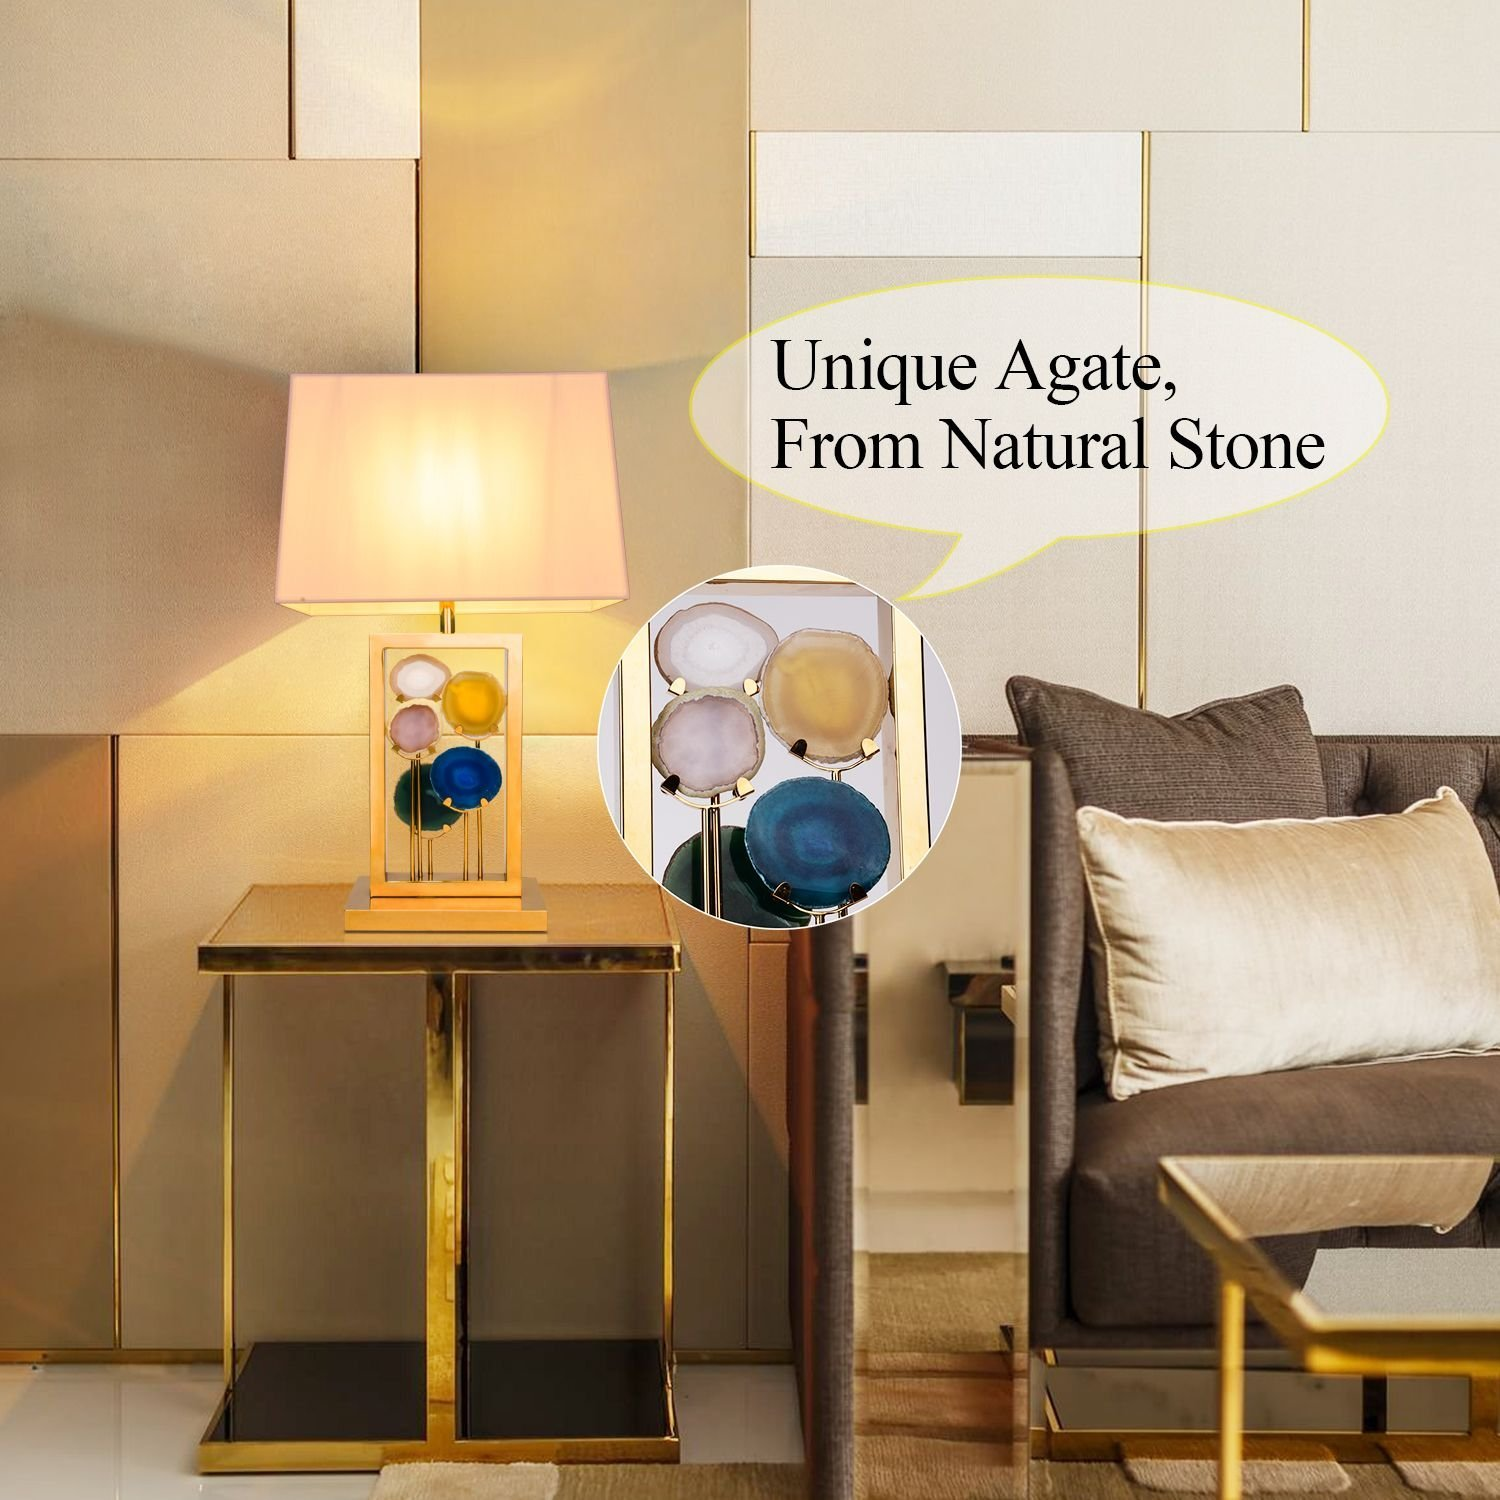 Side Table Lamp Brlighitng Unique Designed Room Lamp in Luxury Agate Pieces Gold Base for Bedside Lamp Living Room Office Decor by BRLIGHTING (Image #1)